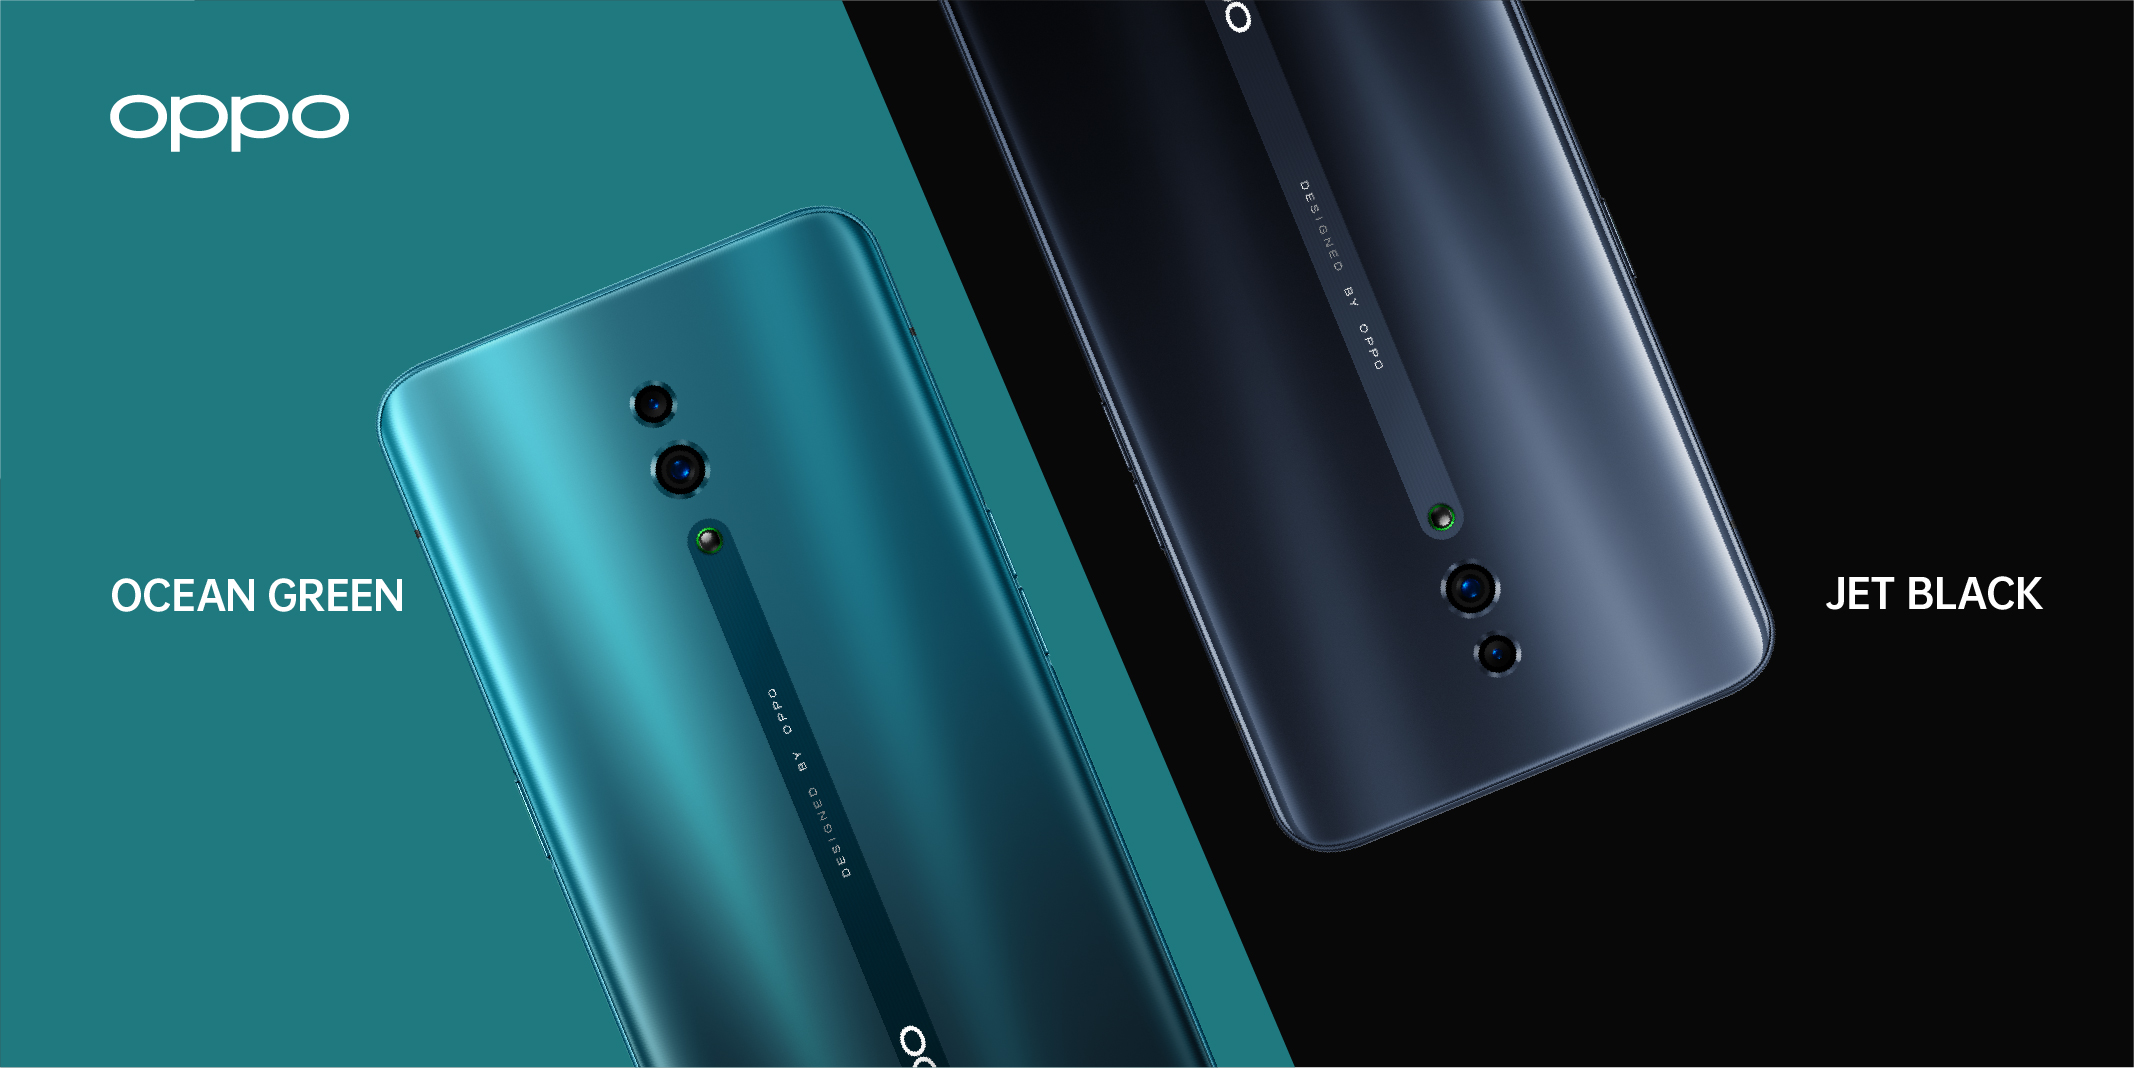 Get Ready to #FurtherYourVision:  The OPPO Reno Series is Now Available